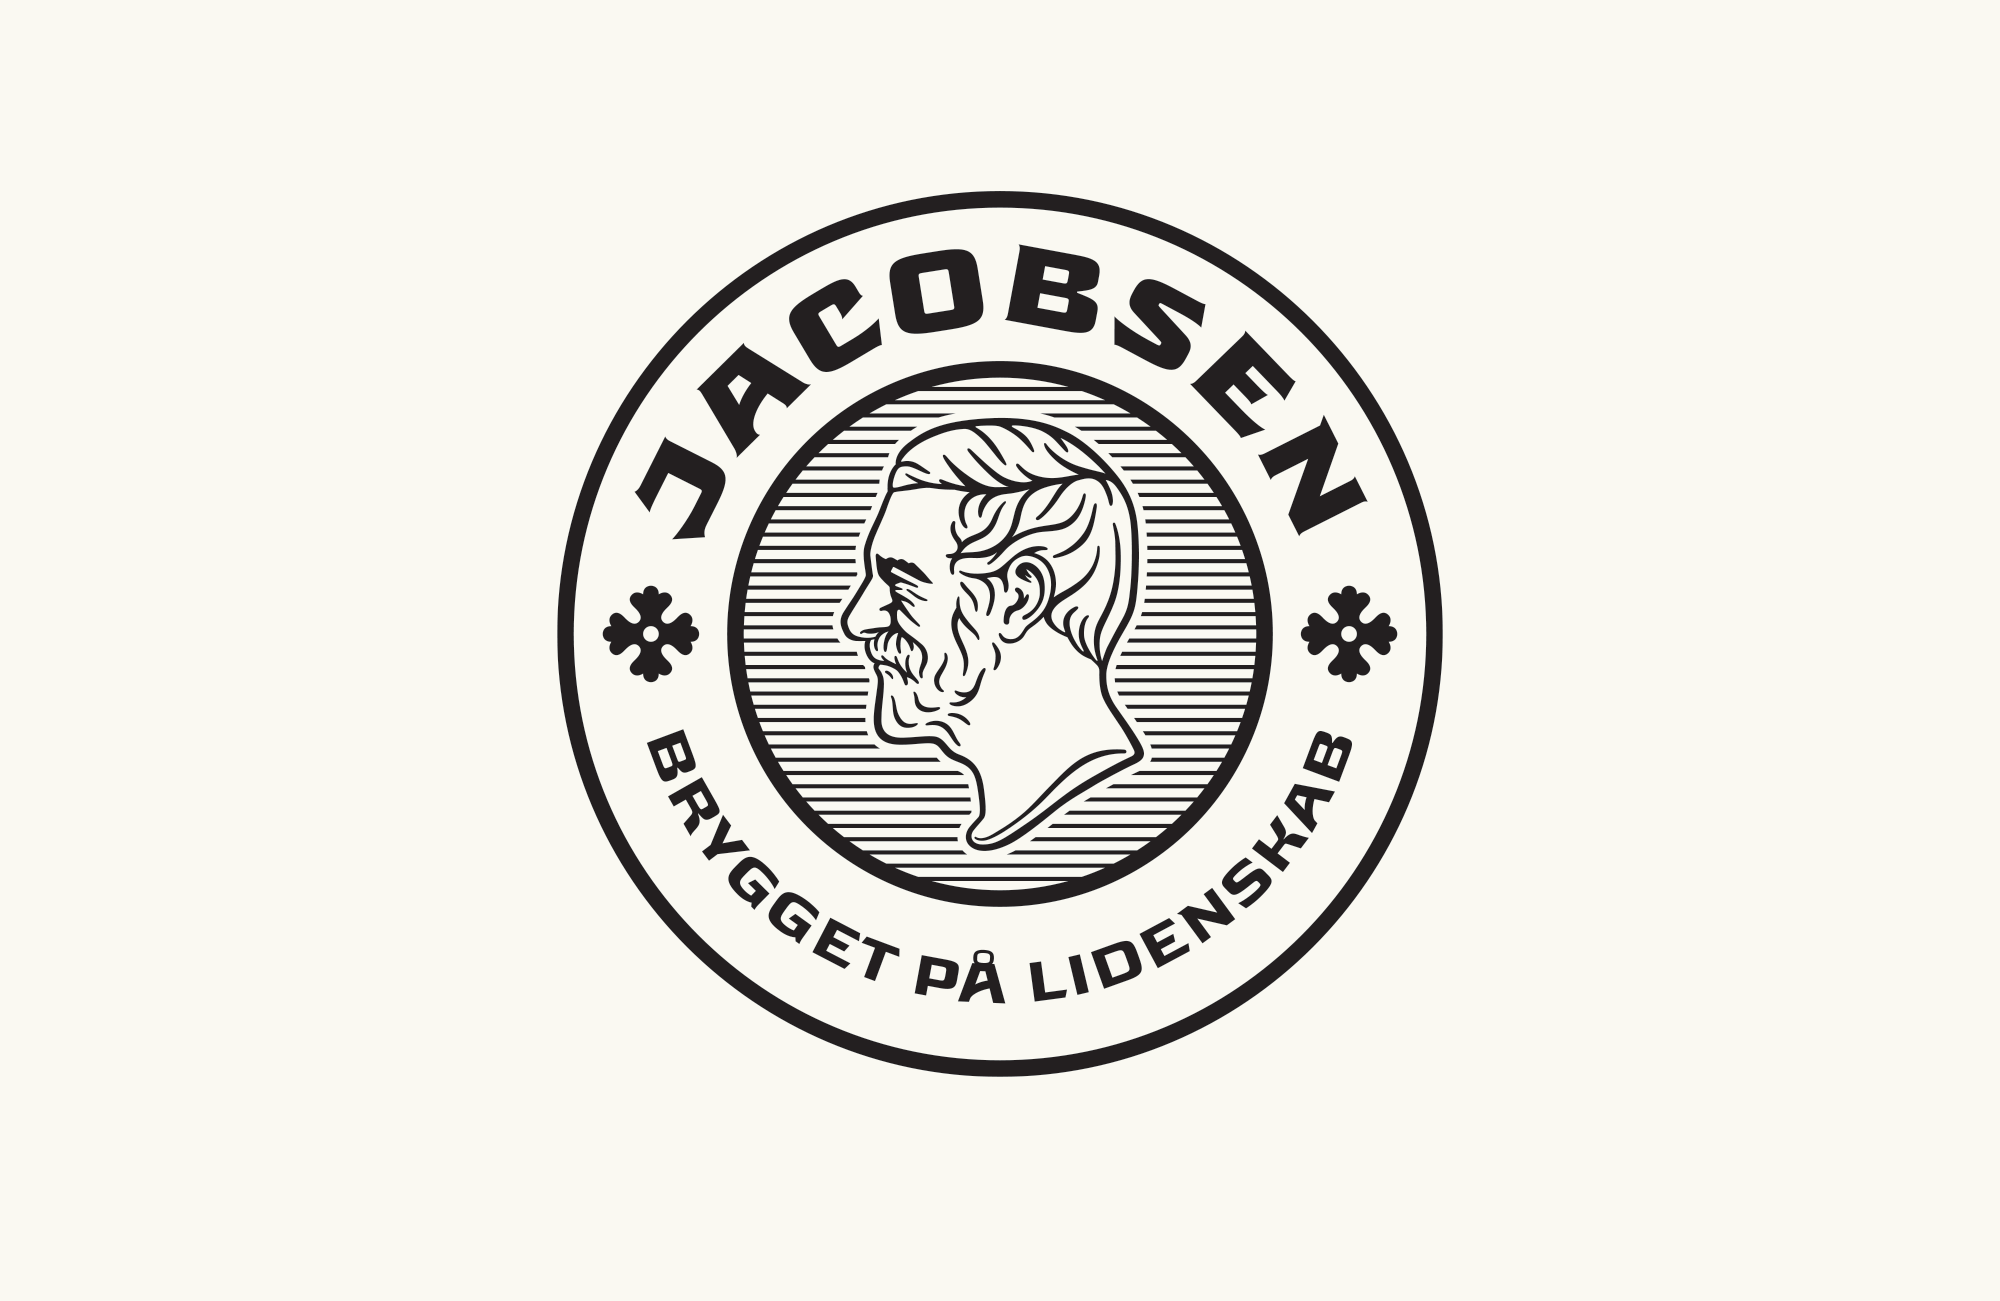 New Logo, Identity, and Packaging for Jacobsen by Montdor